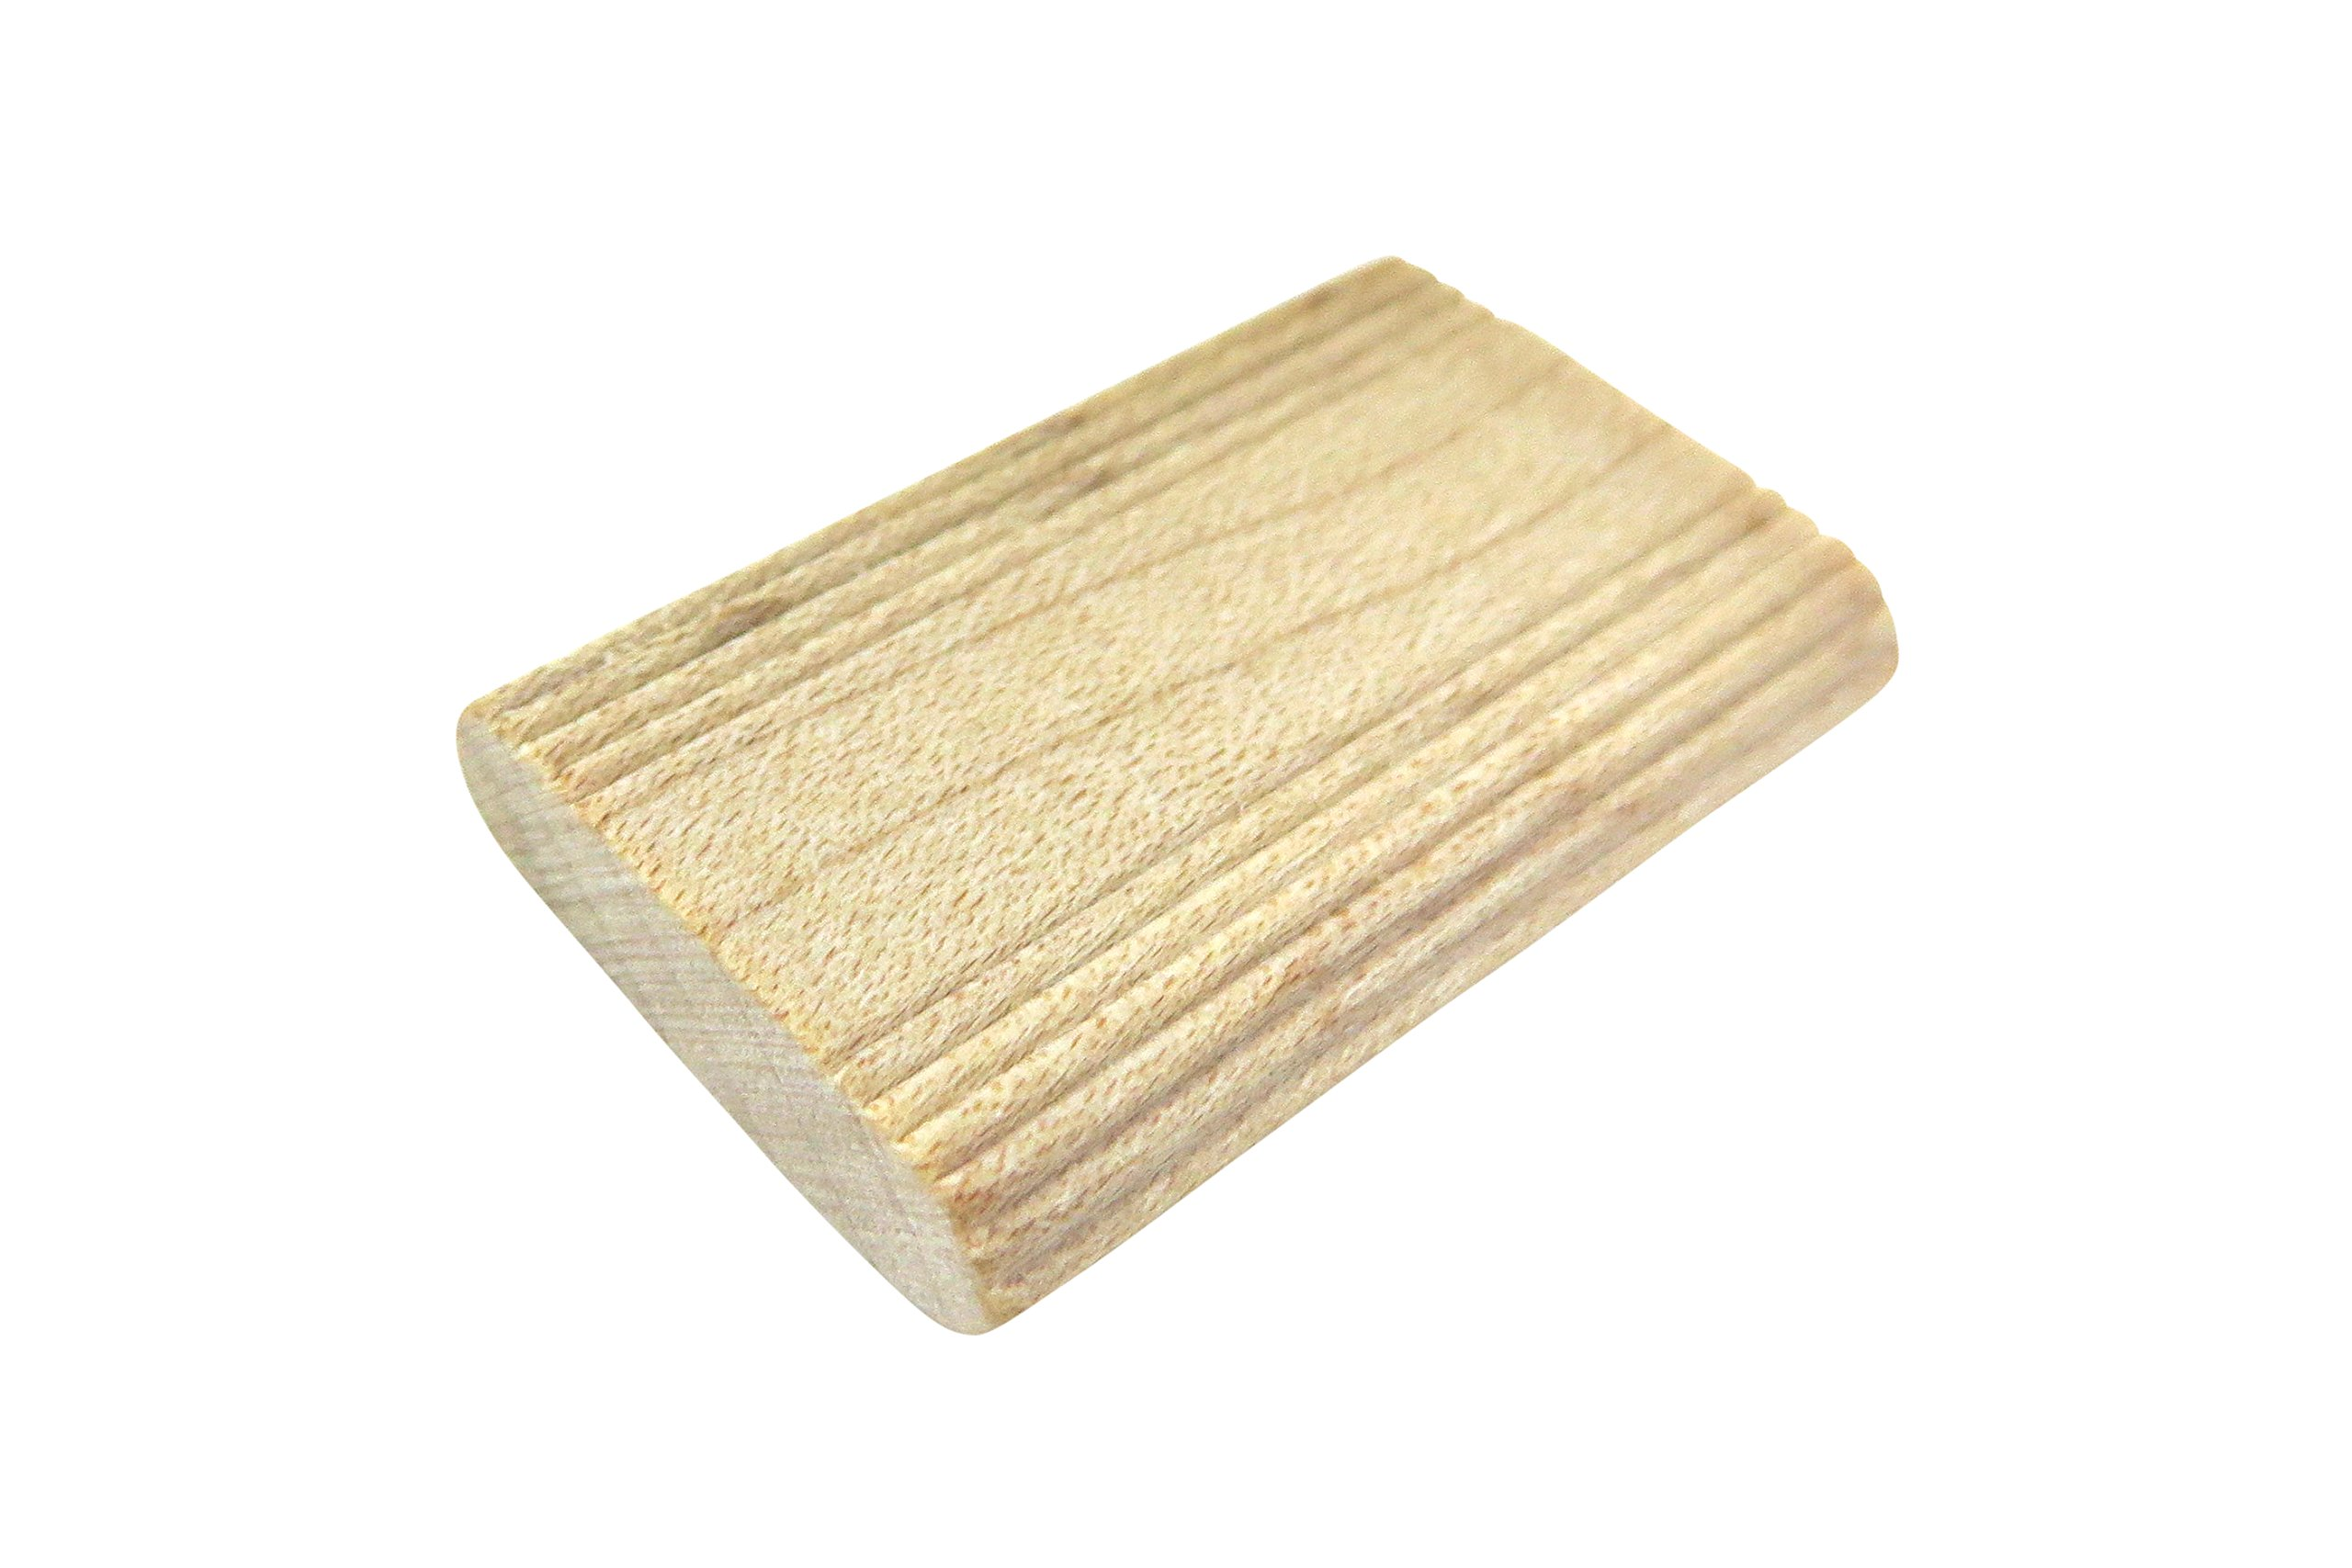 Taytools 400 Pack 5mm x 30mm x 19mm Beechwood Loose Tenons Compatible With Festool Domino DF by Taytools